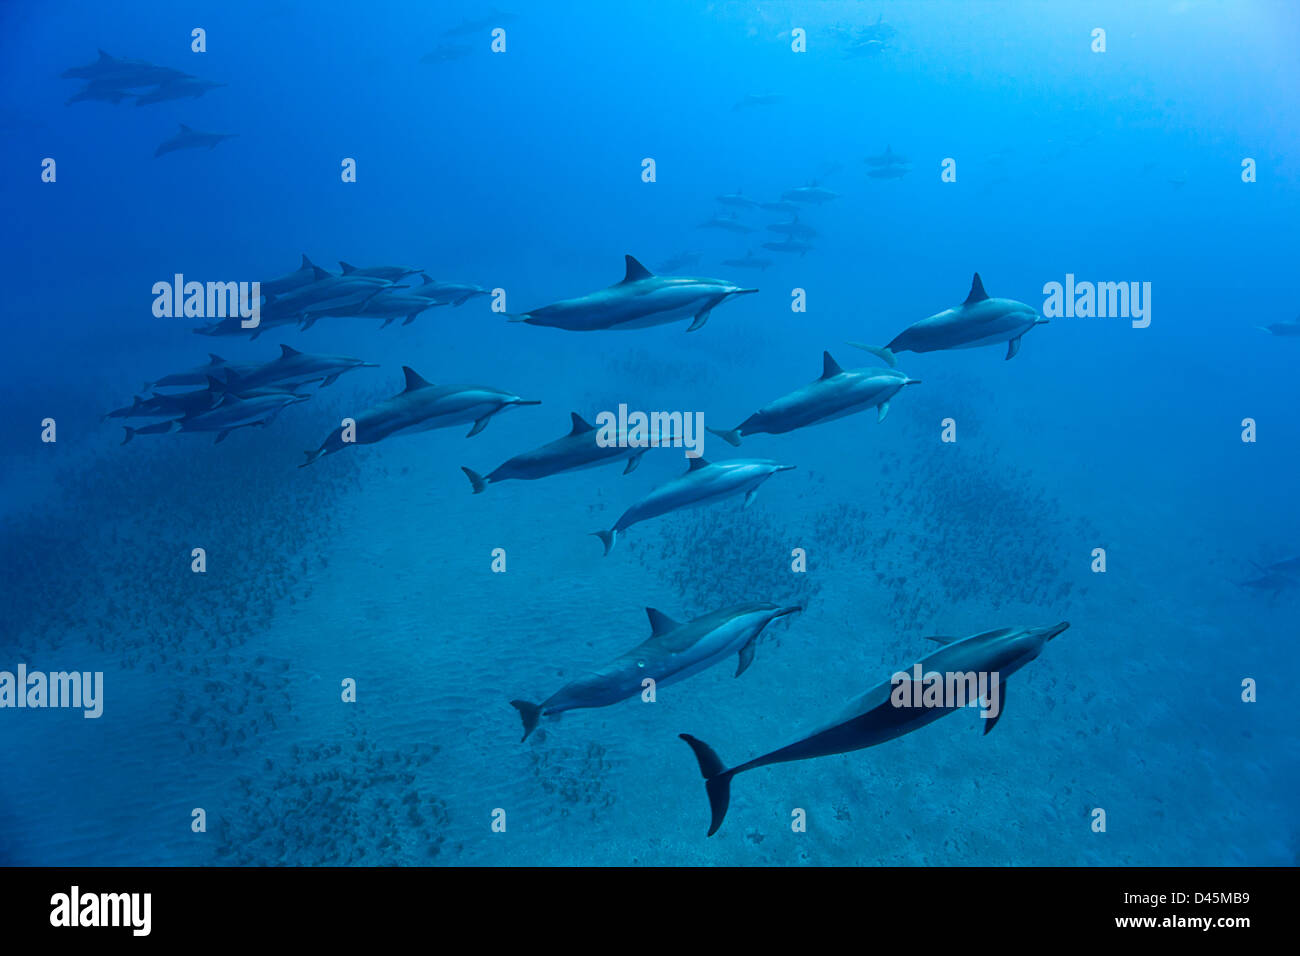 A group of spinner dolphin, Stenella longirostris, moving along the coastline of Lanai, Hawaii. - Stock Image